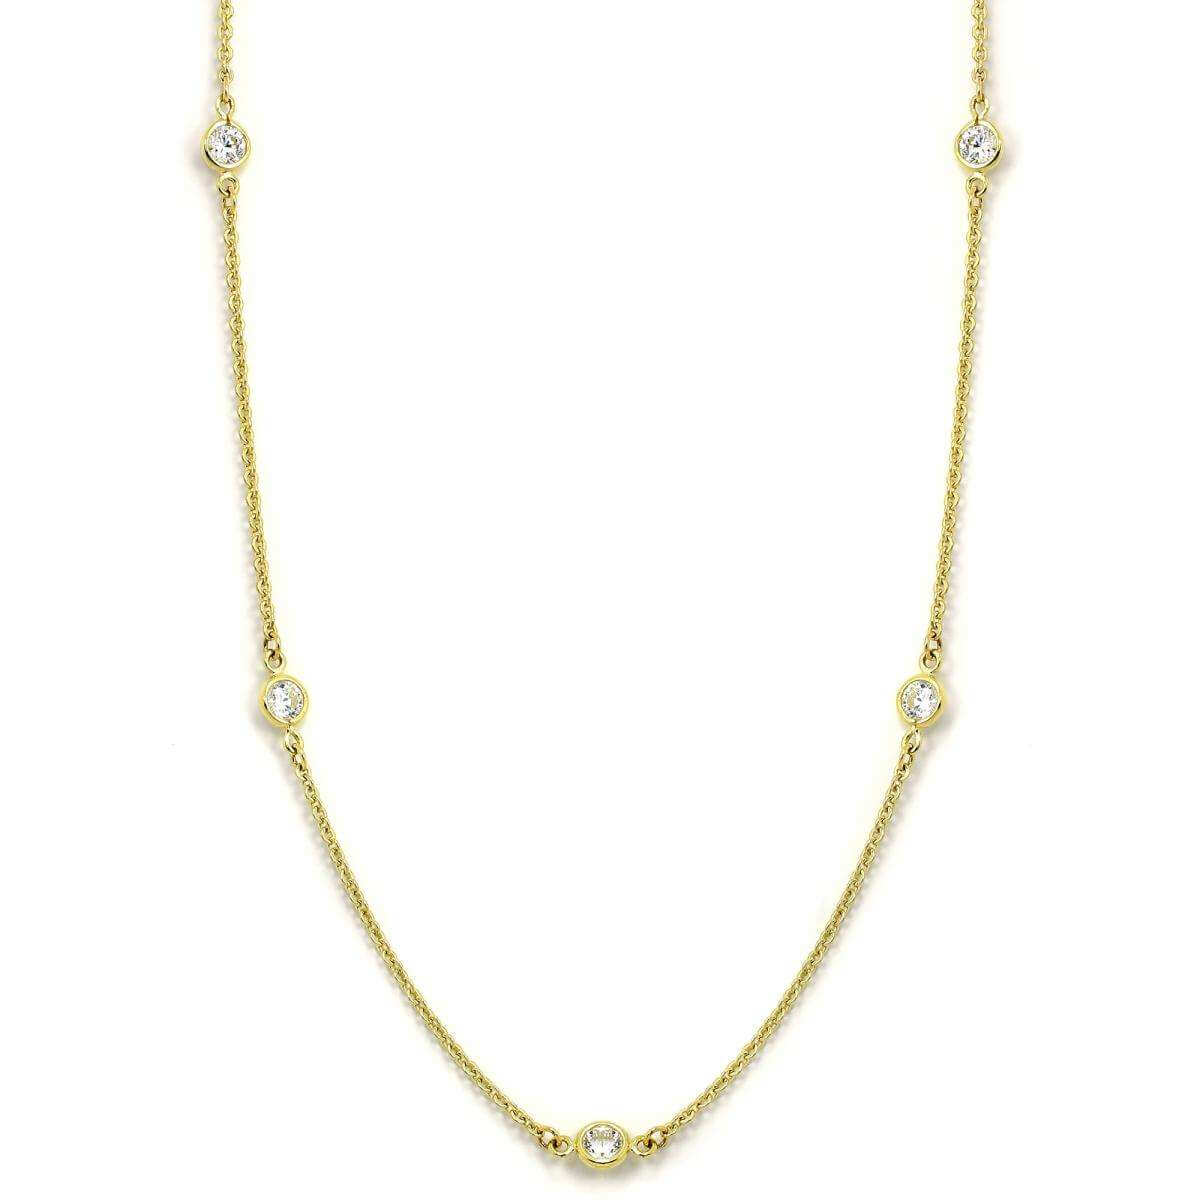 9ct Gold & CZ Crystal Fine Belcher Chain 17 Inch Collarette